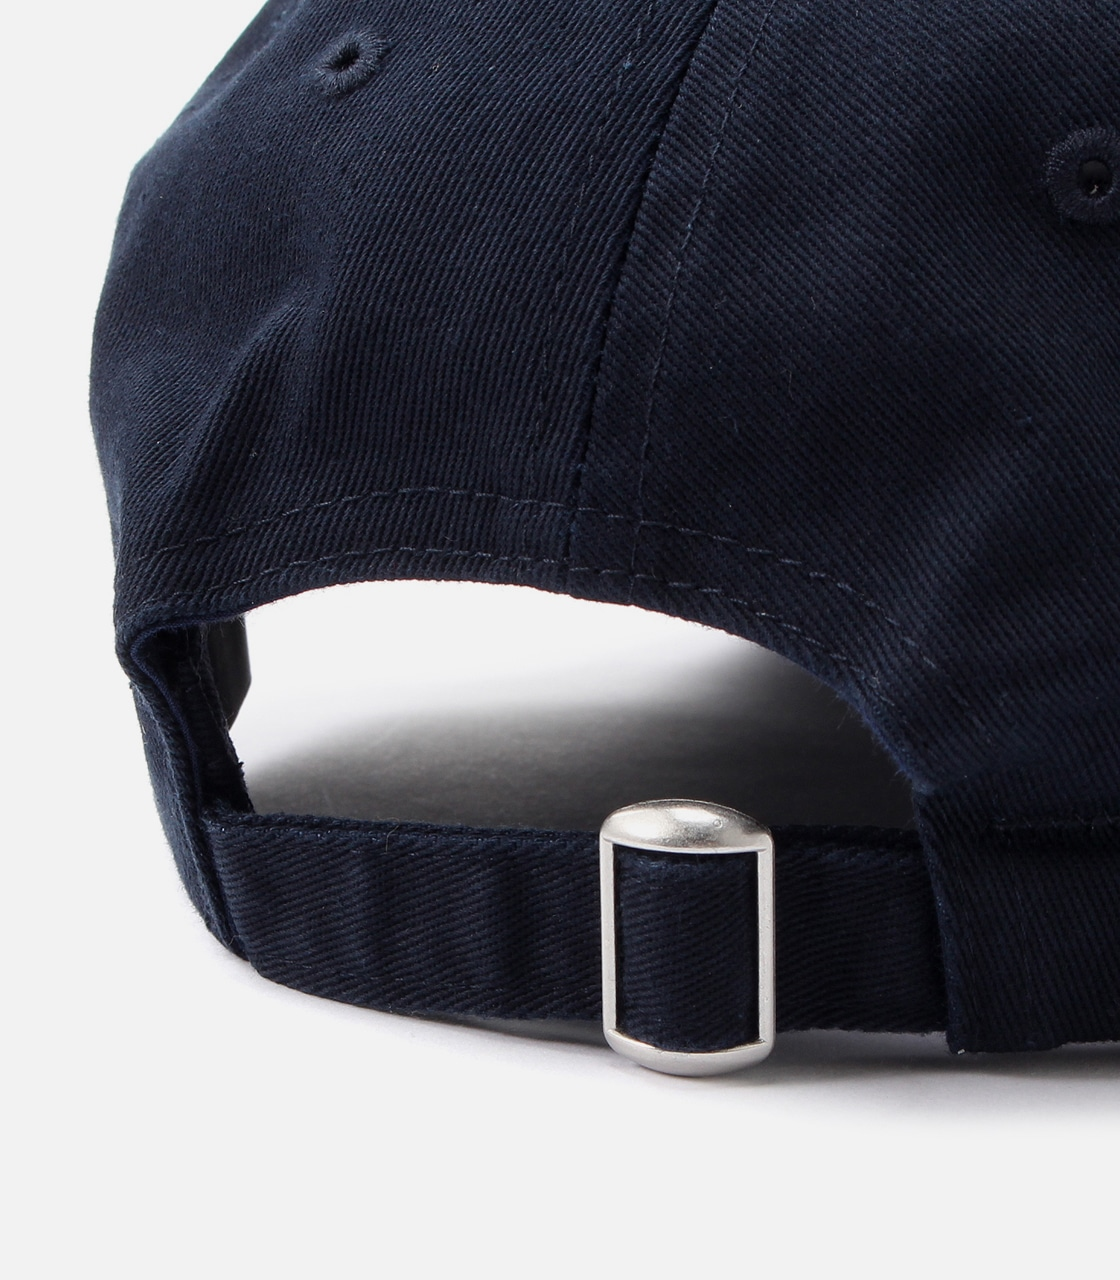 【AZUL BY MOUSSY】BASIC TWILL CAP 【MOOK49掲載 90020】 詳細画像 NVY 8